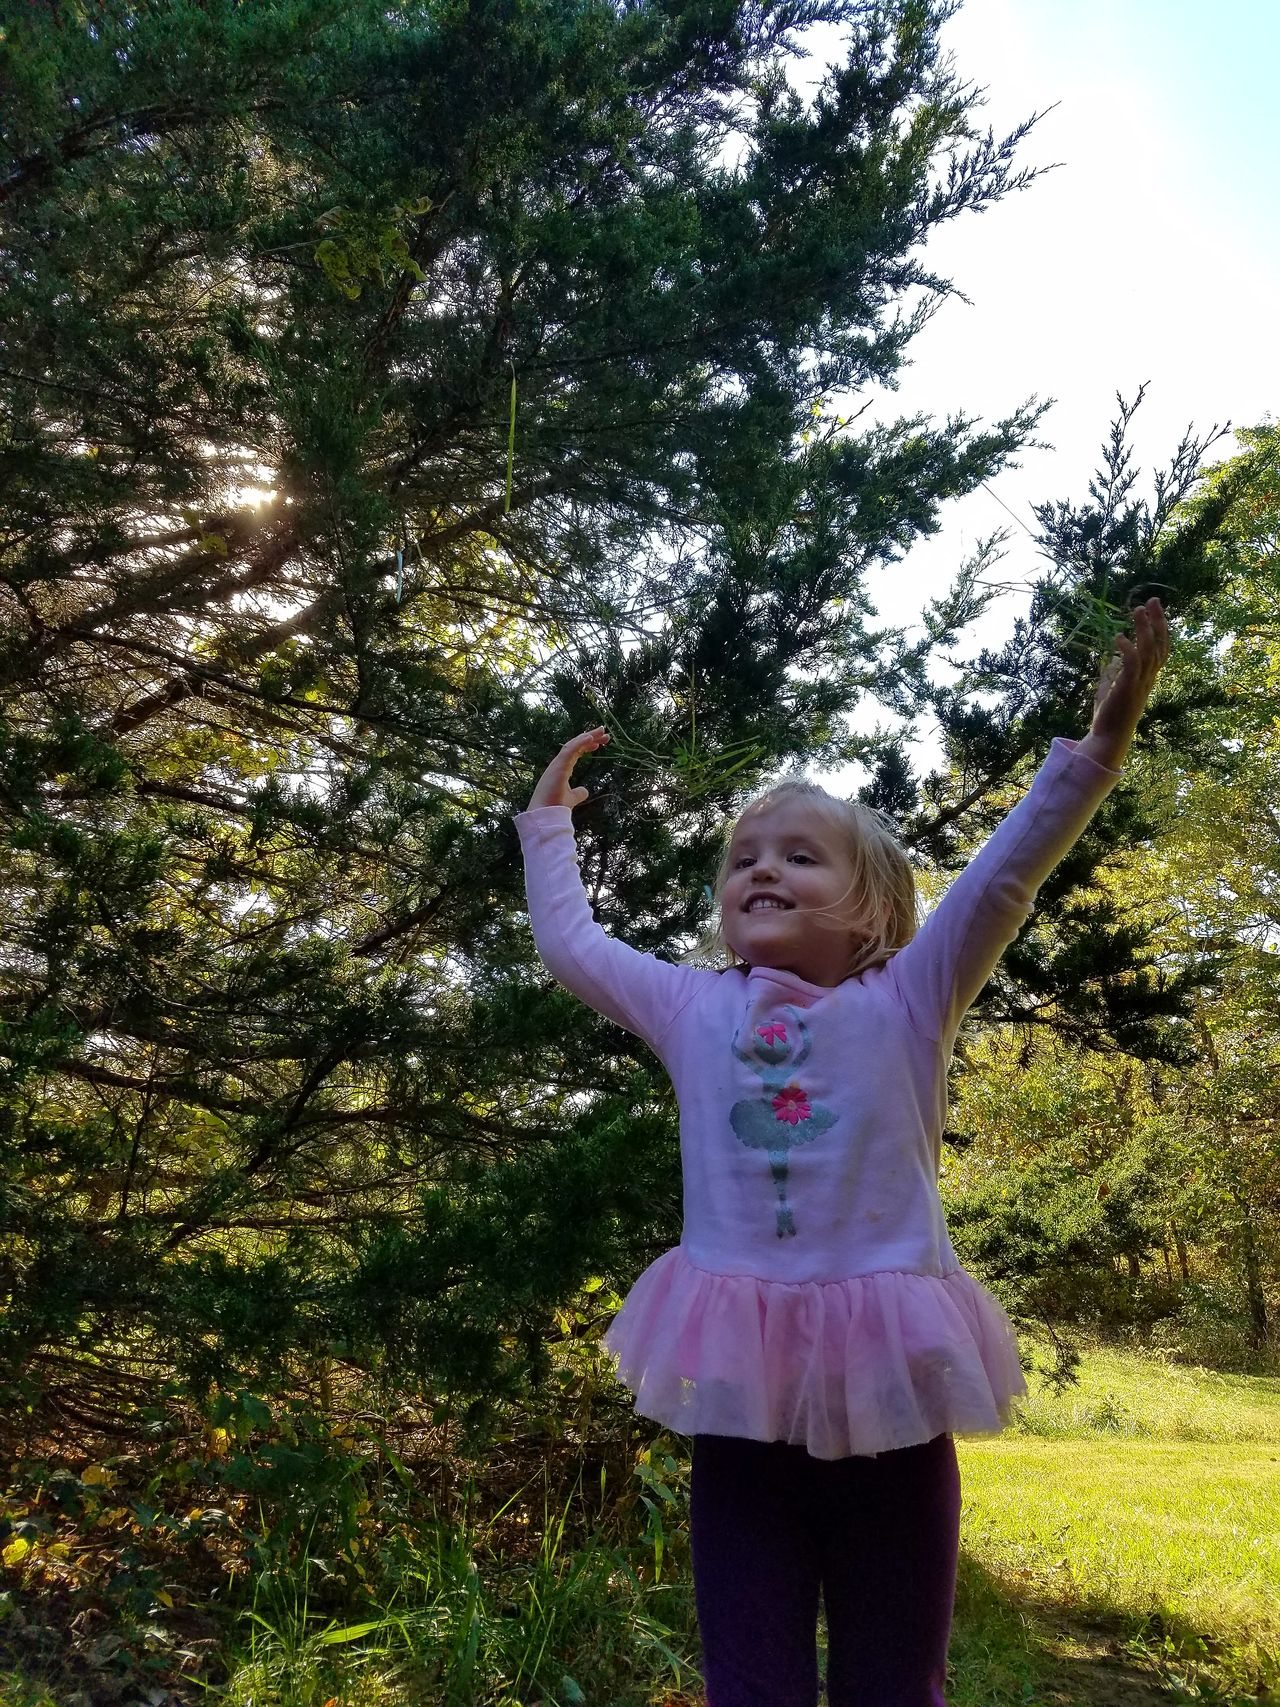 Jump for joy! One Girl Only Child Childhood One Person Arms Raised Happiness Smiling Tree Outdoors Day Mybaby Gwennie Goose Gwenniegoose Gwinning Jumping Eye4photography  Samsung Galaxy S7 Edge Real People Beauty In Nature The Purist (no Edit, No Filter) Eyeemphotography Enjoy The New Normal